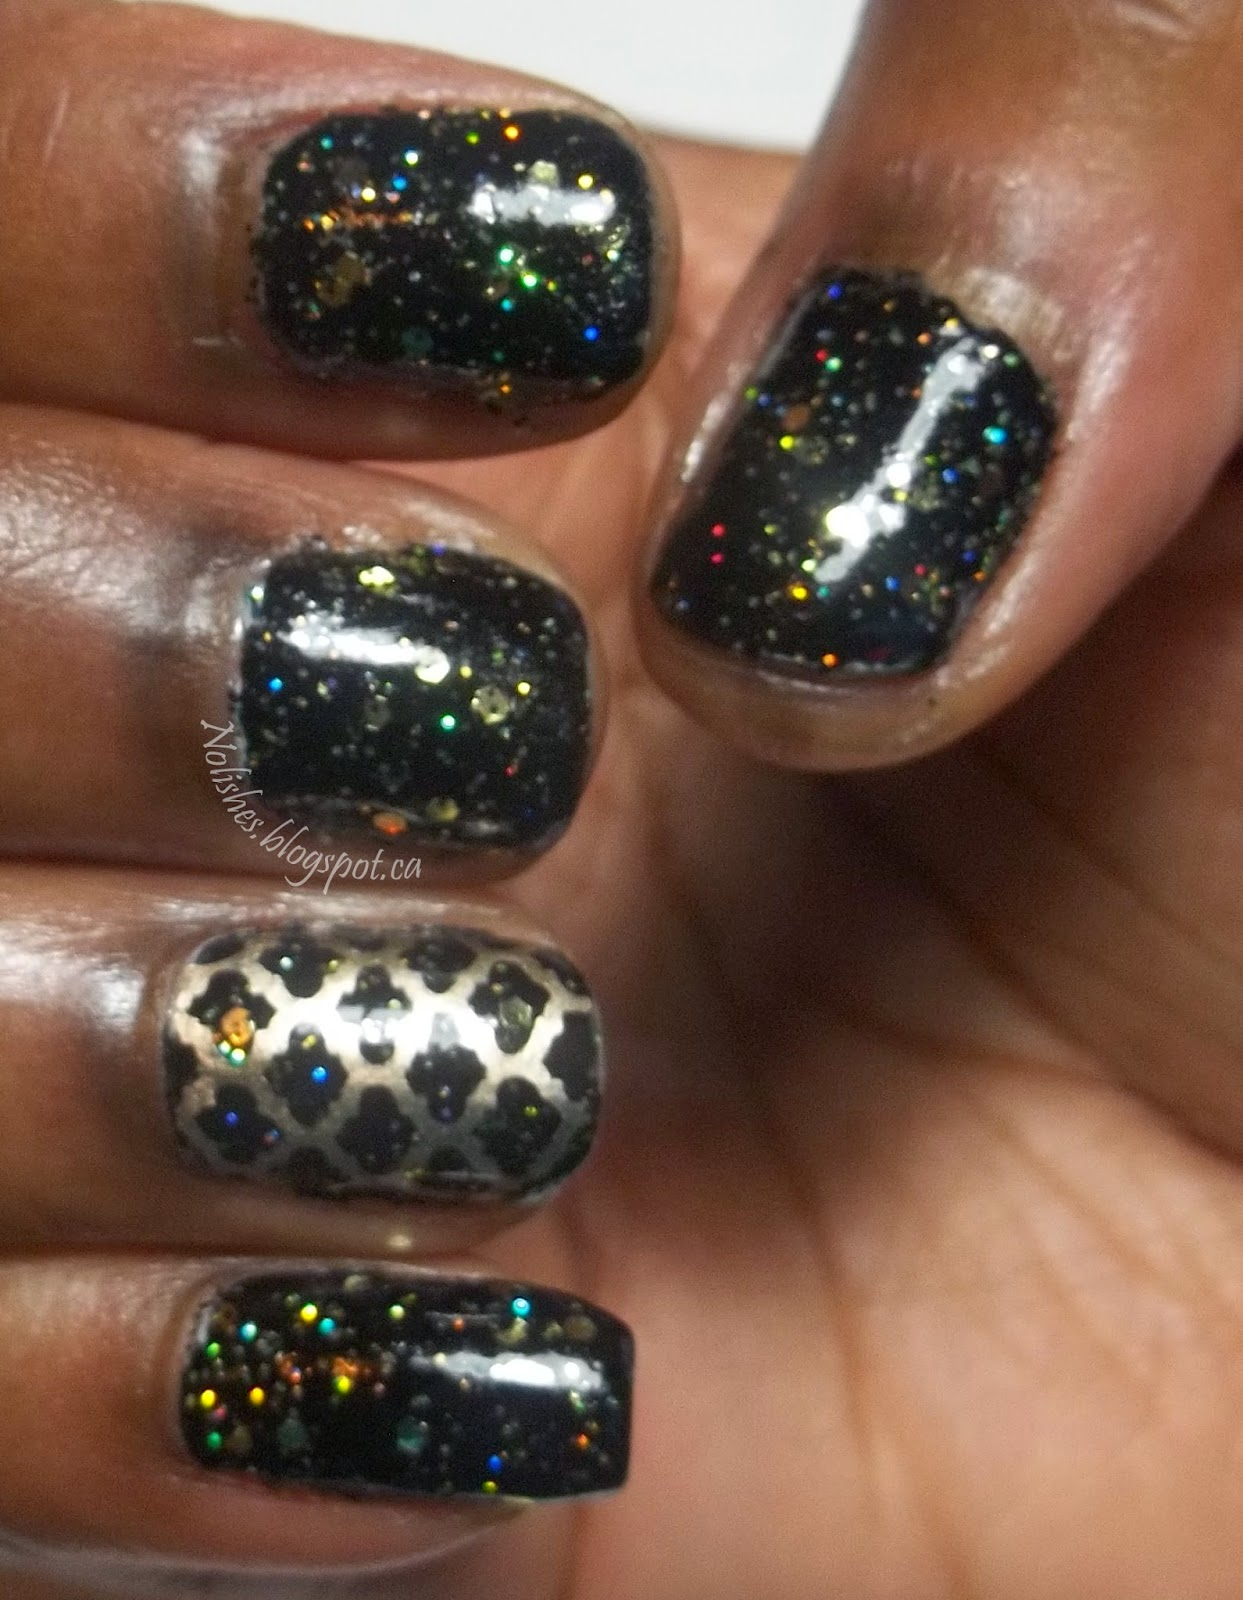 Glitter Manicure featuring black polish, covered with a gold and holographic glitter mix, and a nail stamped quatrefoil lattice pattern stamped in gold on the ring finger.